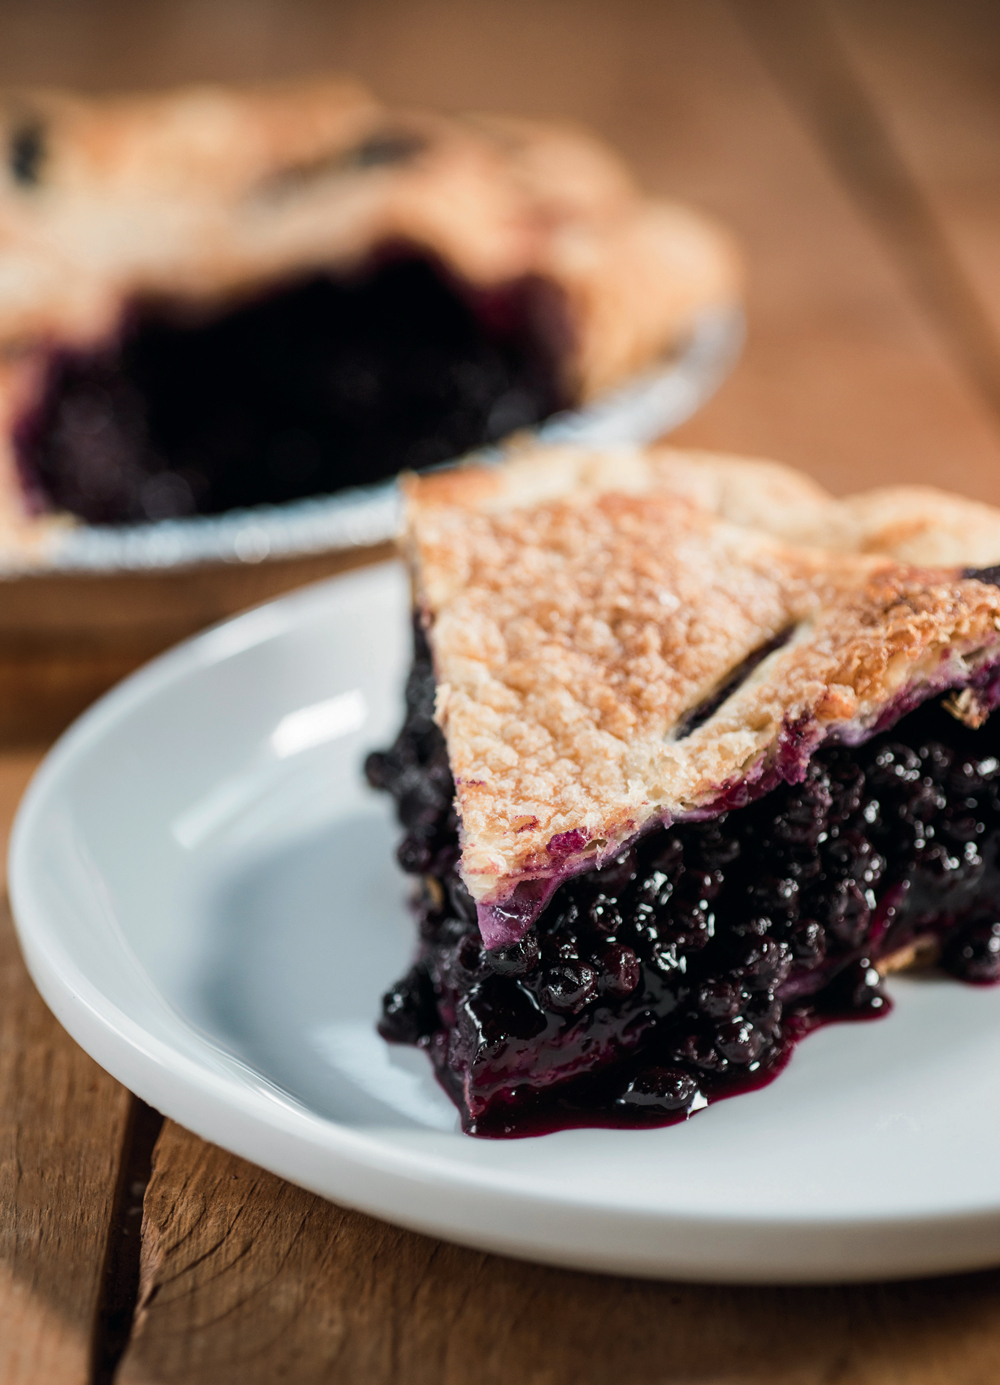 Two Fat Cats' Wild Maine Blueberry Pie